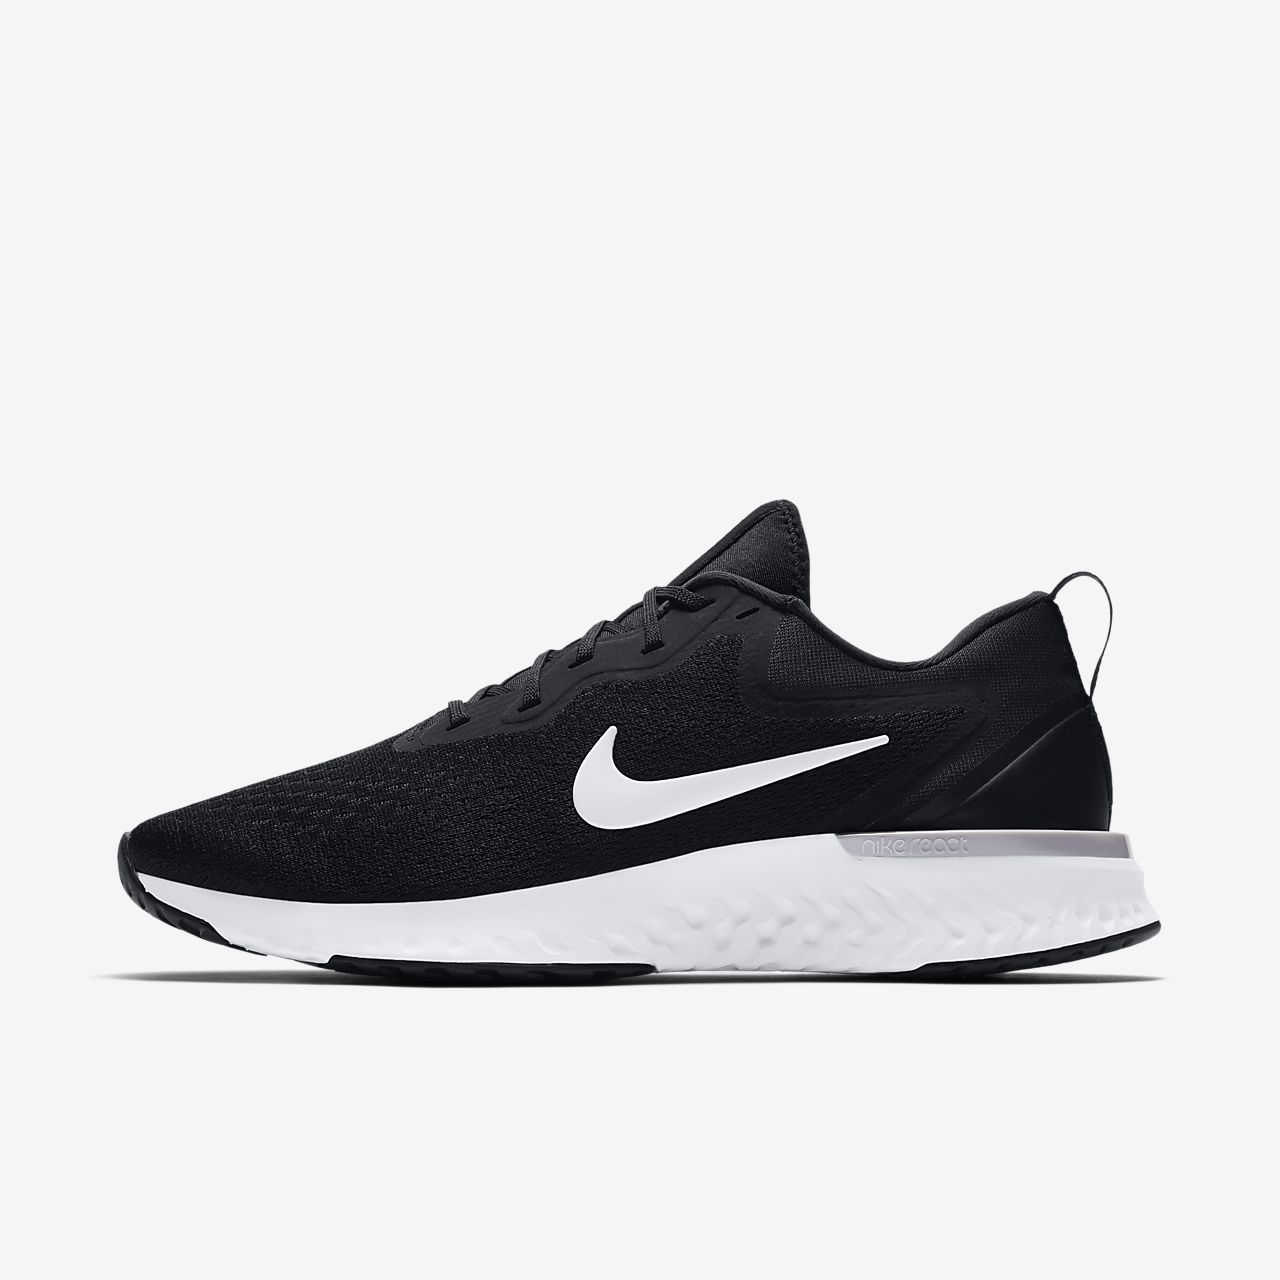 03a33a01336e Nike Odyssey React Men s Running Shoe. Nike.com IN